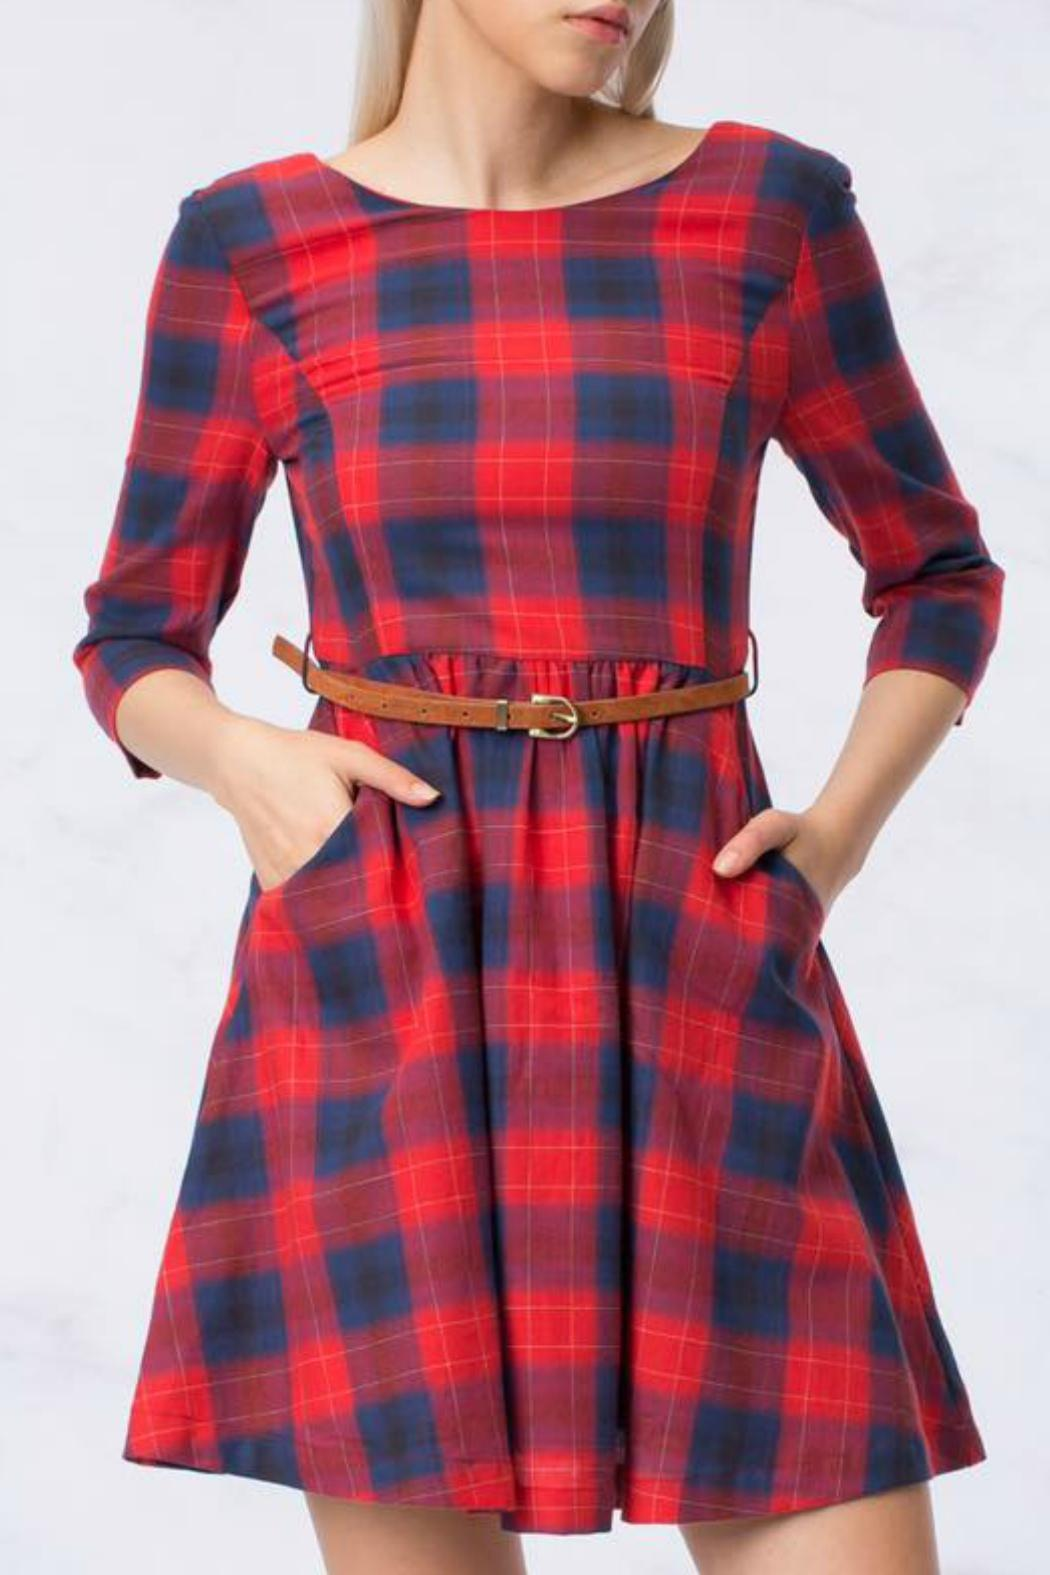 HYFVE Plaid Dress - Main Image